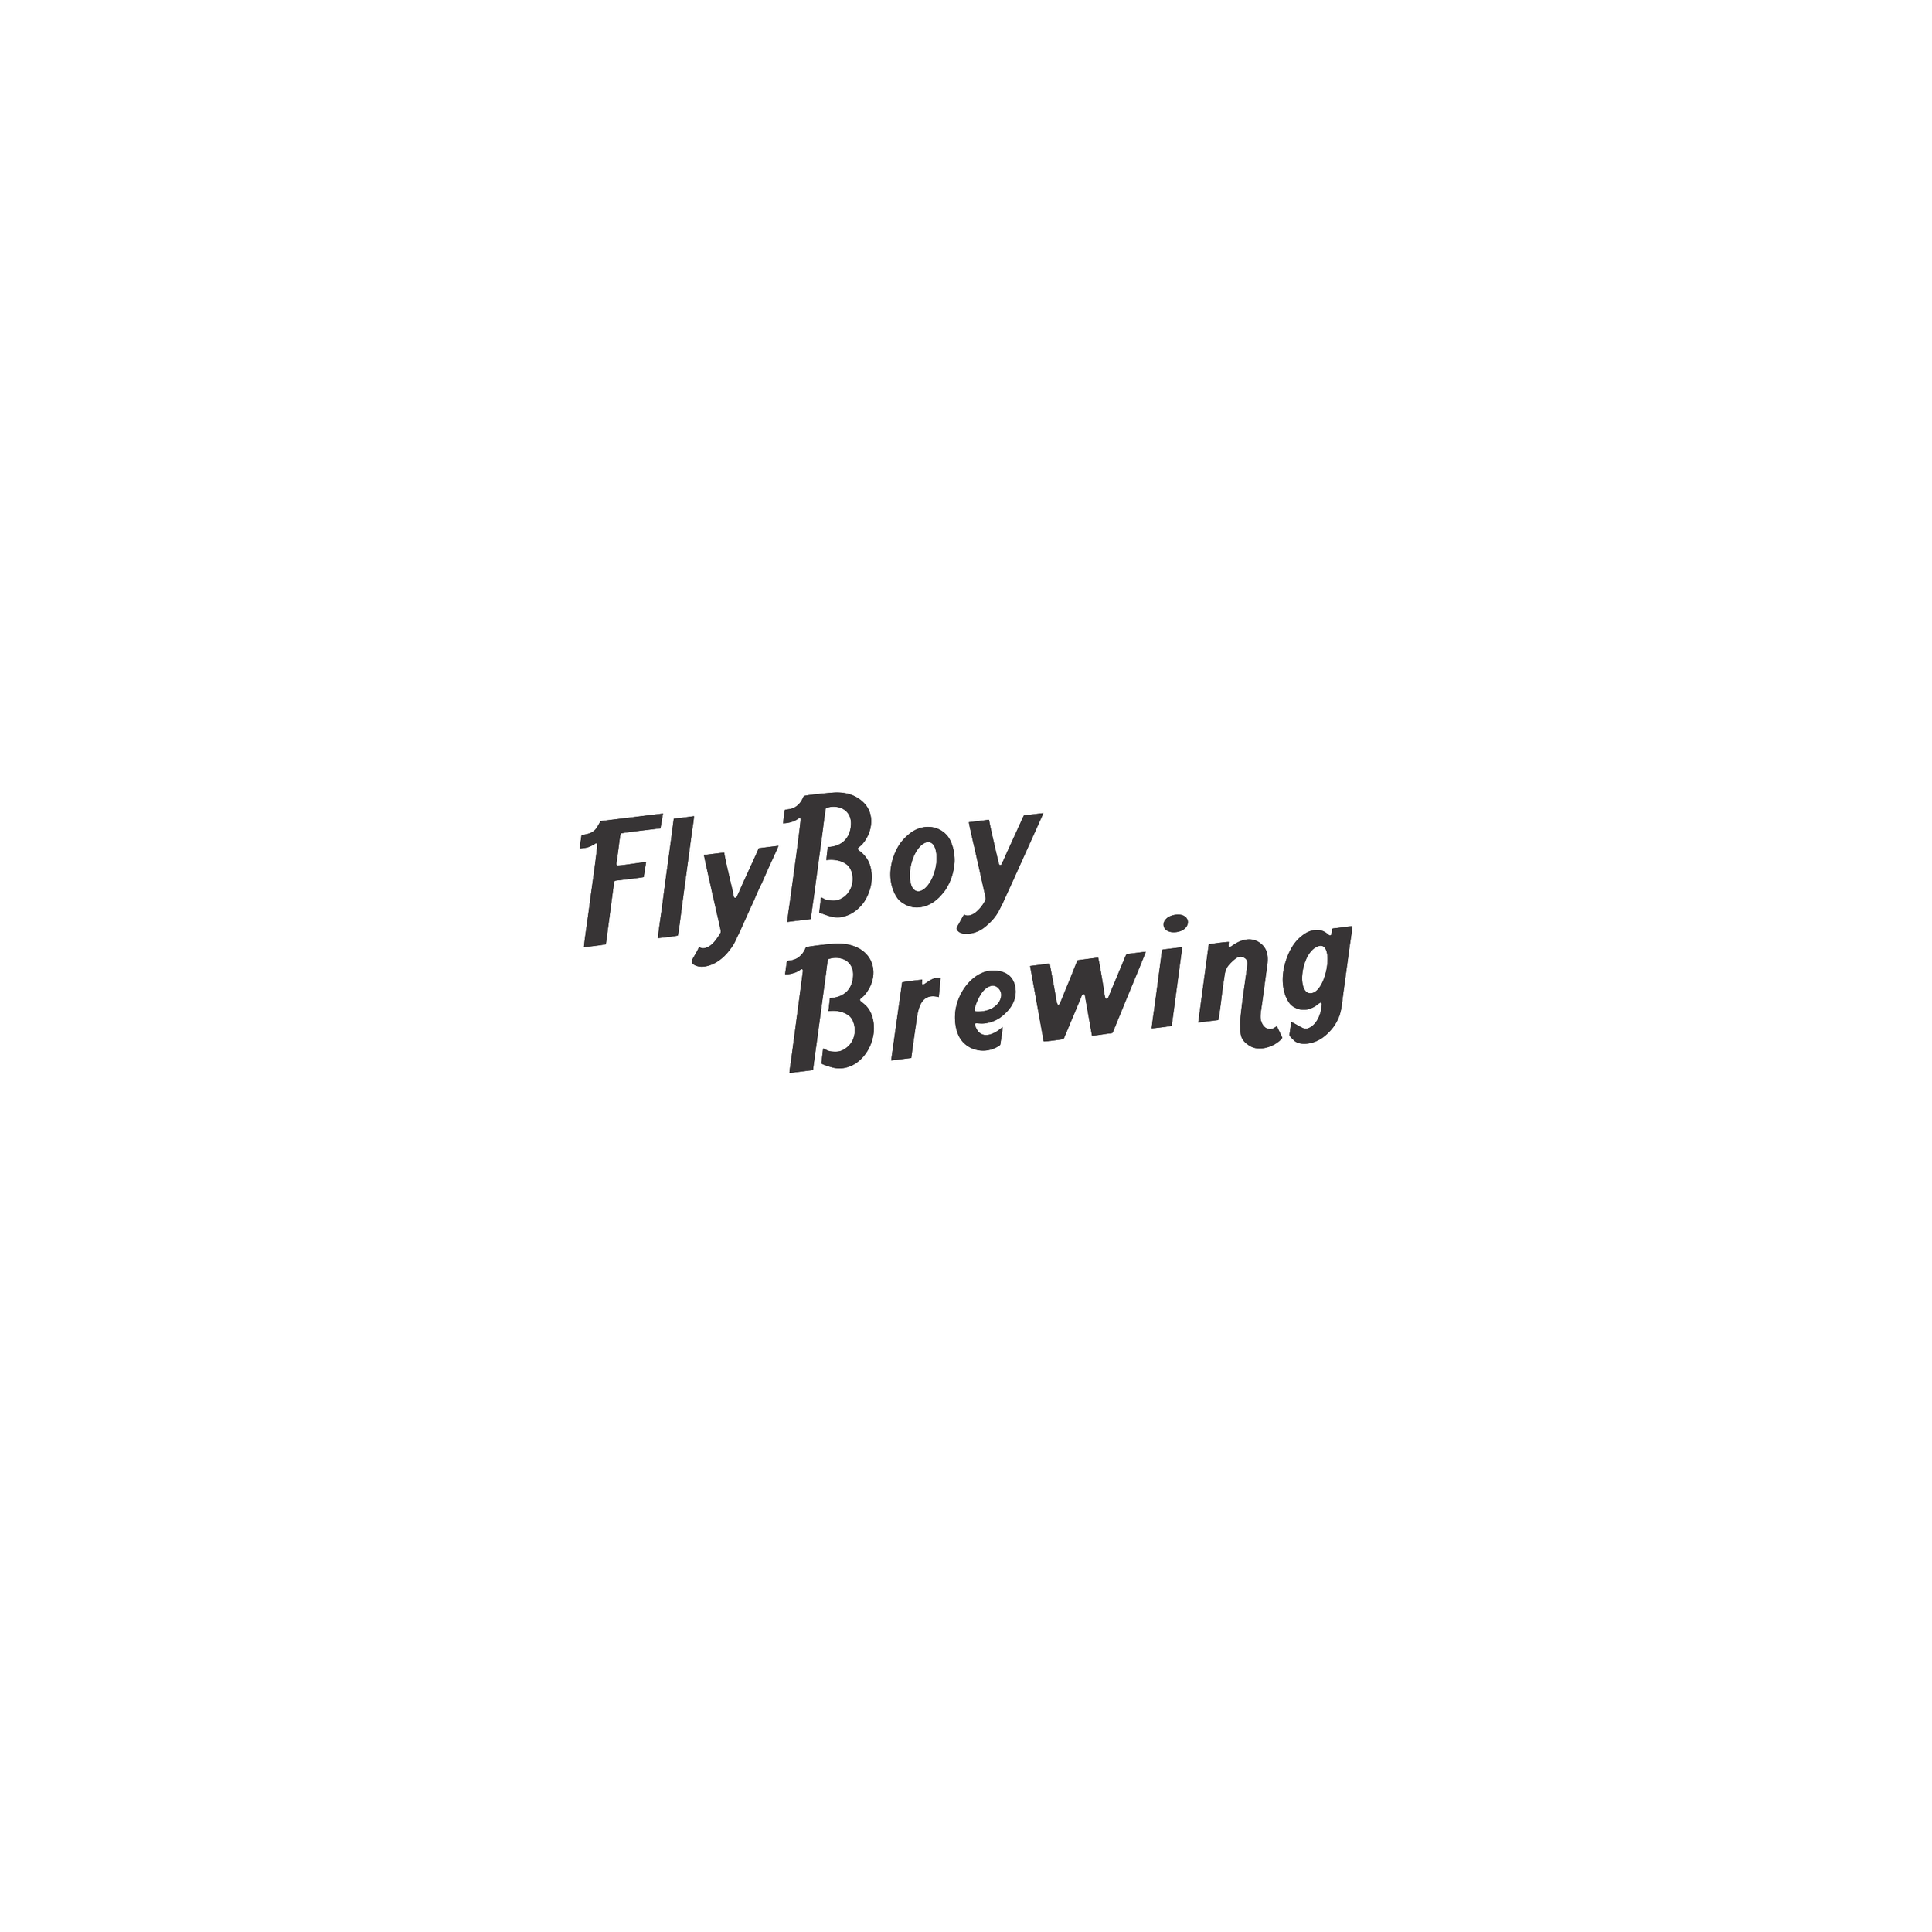 Flyboy.png